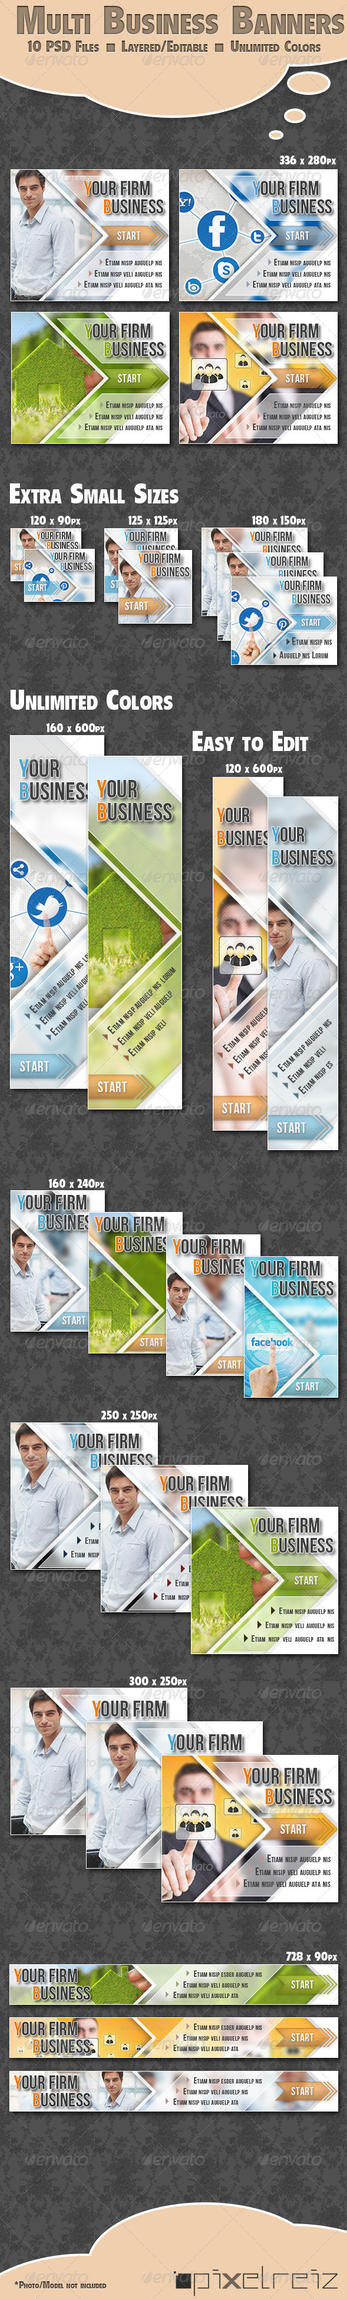 Business Banner - for all kind of business / Multi by Pixelreiz